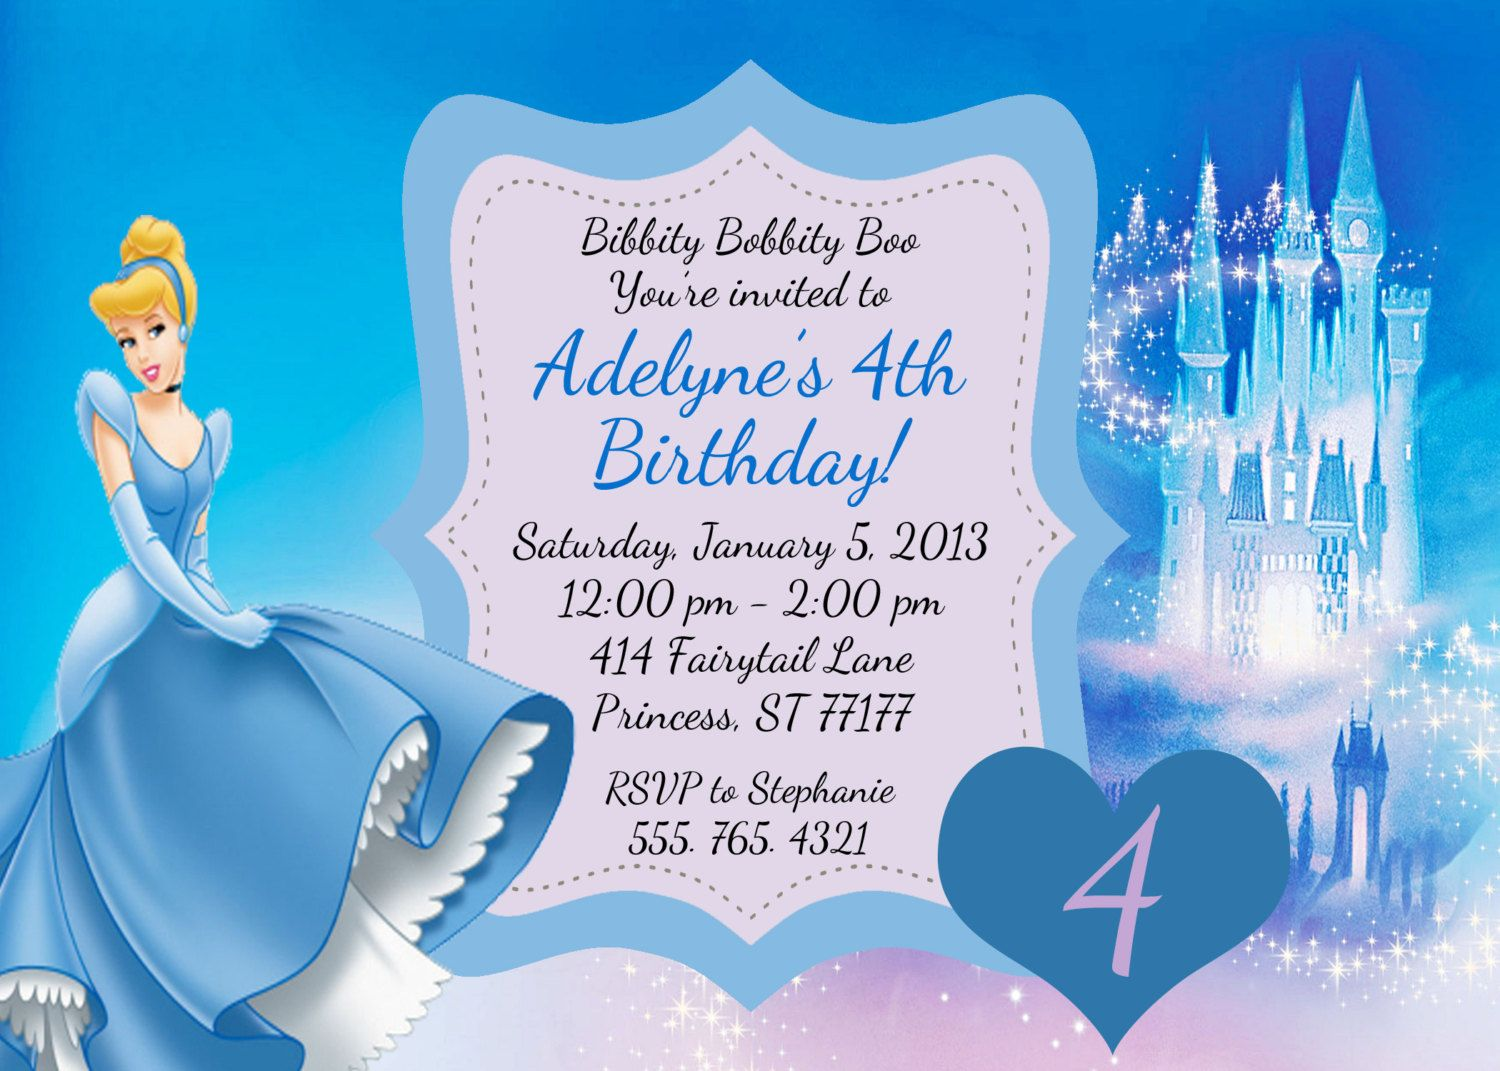 Cinderella Birthday Invitation | Party time | Pinterest ...